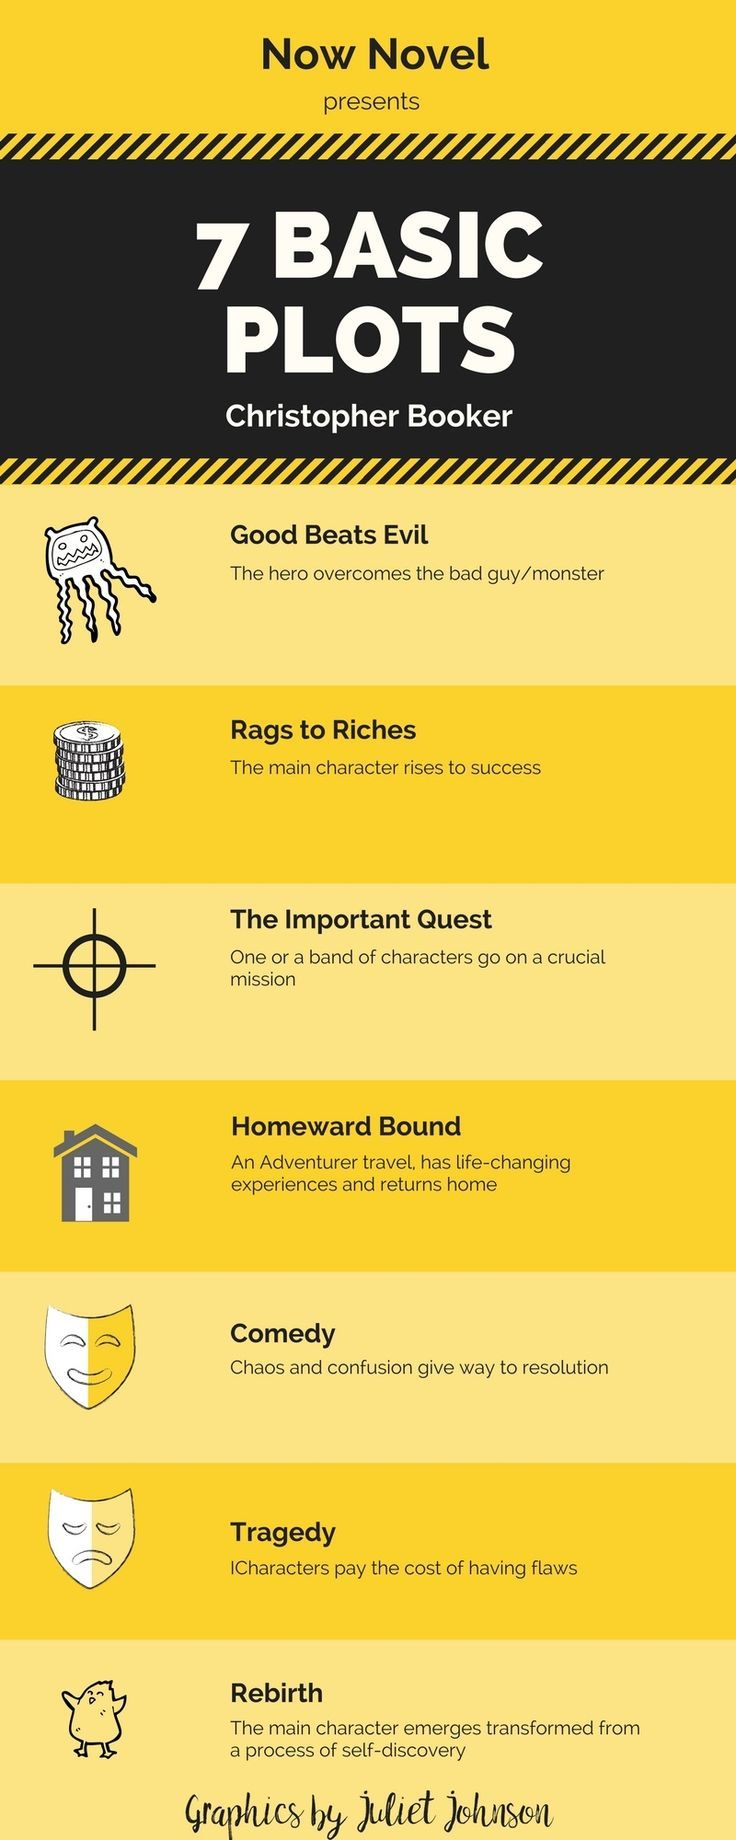 361 best Power of Words images on Pinterest   Handwriting ideas ...